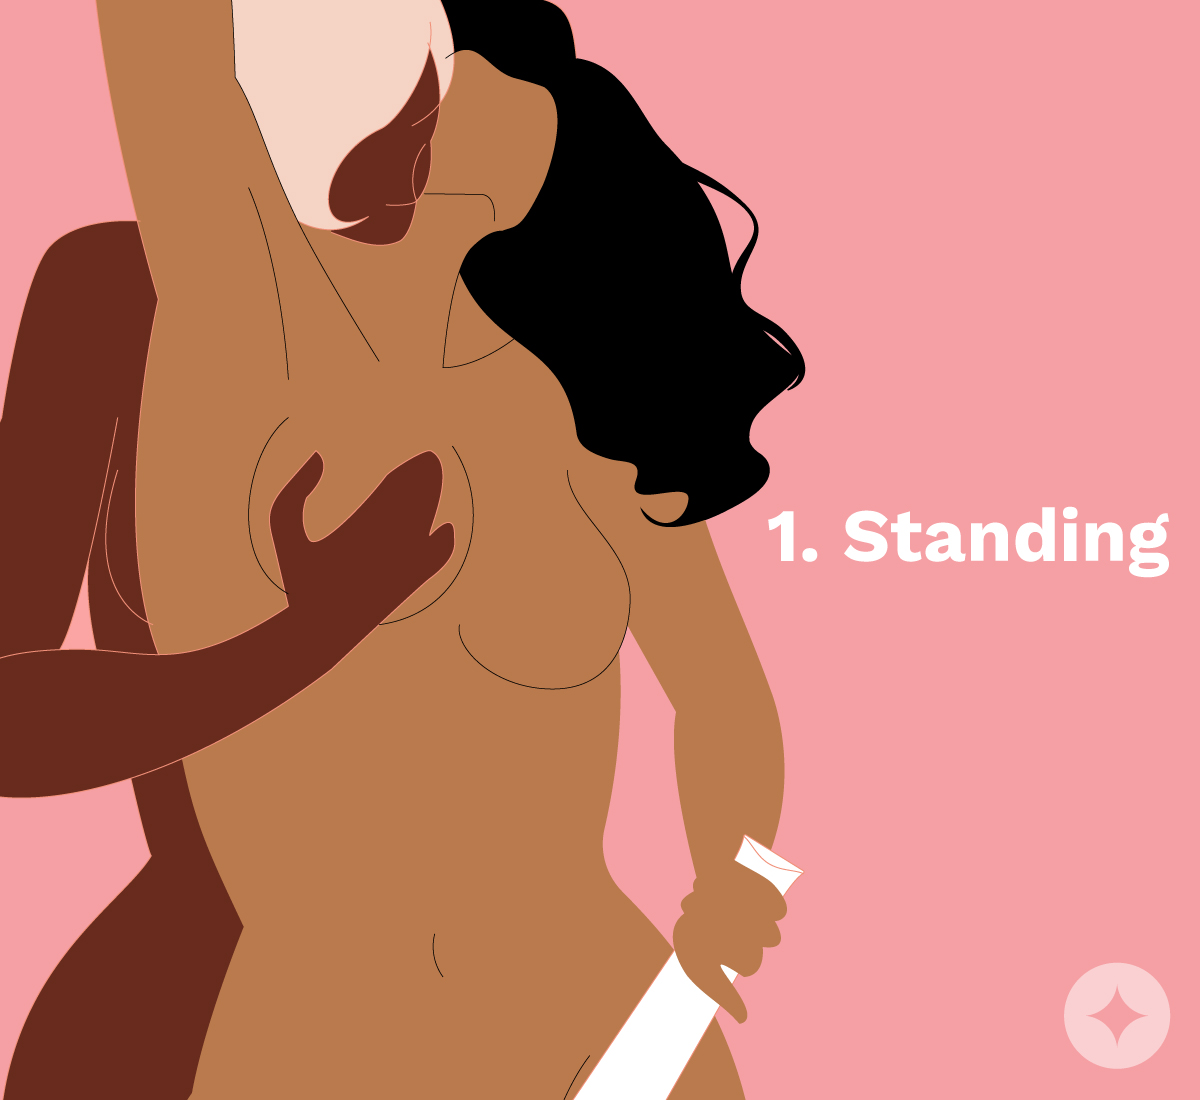 Standing is one of the easiest positions to use sex toys with your partner